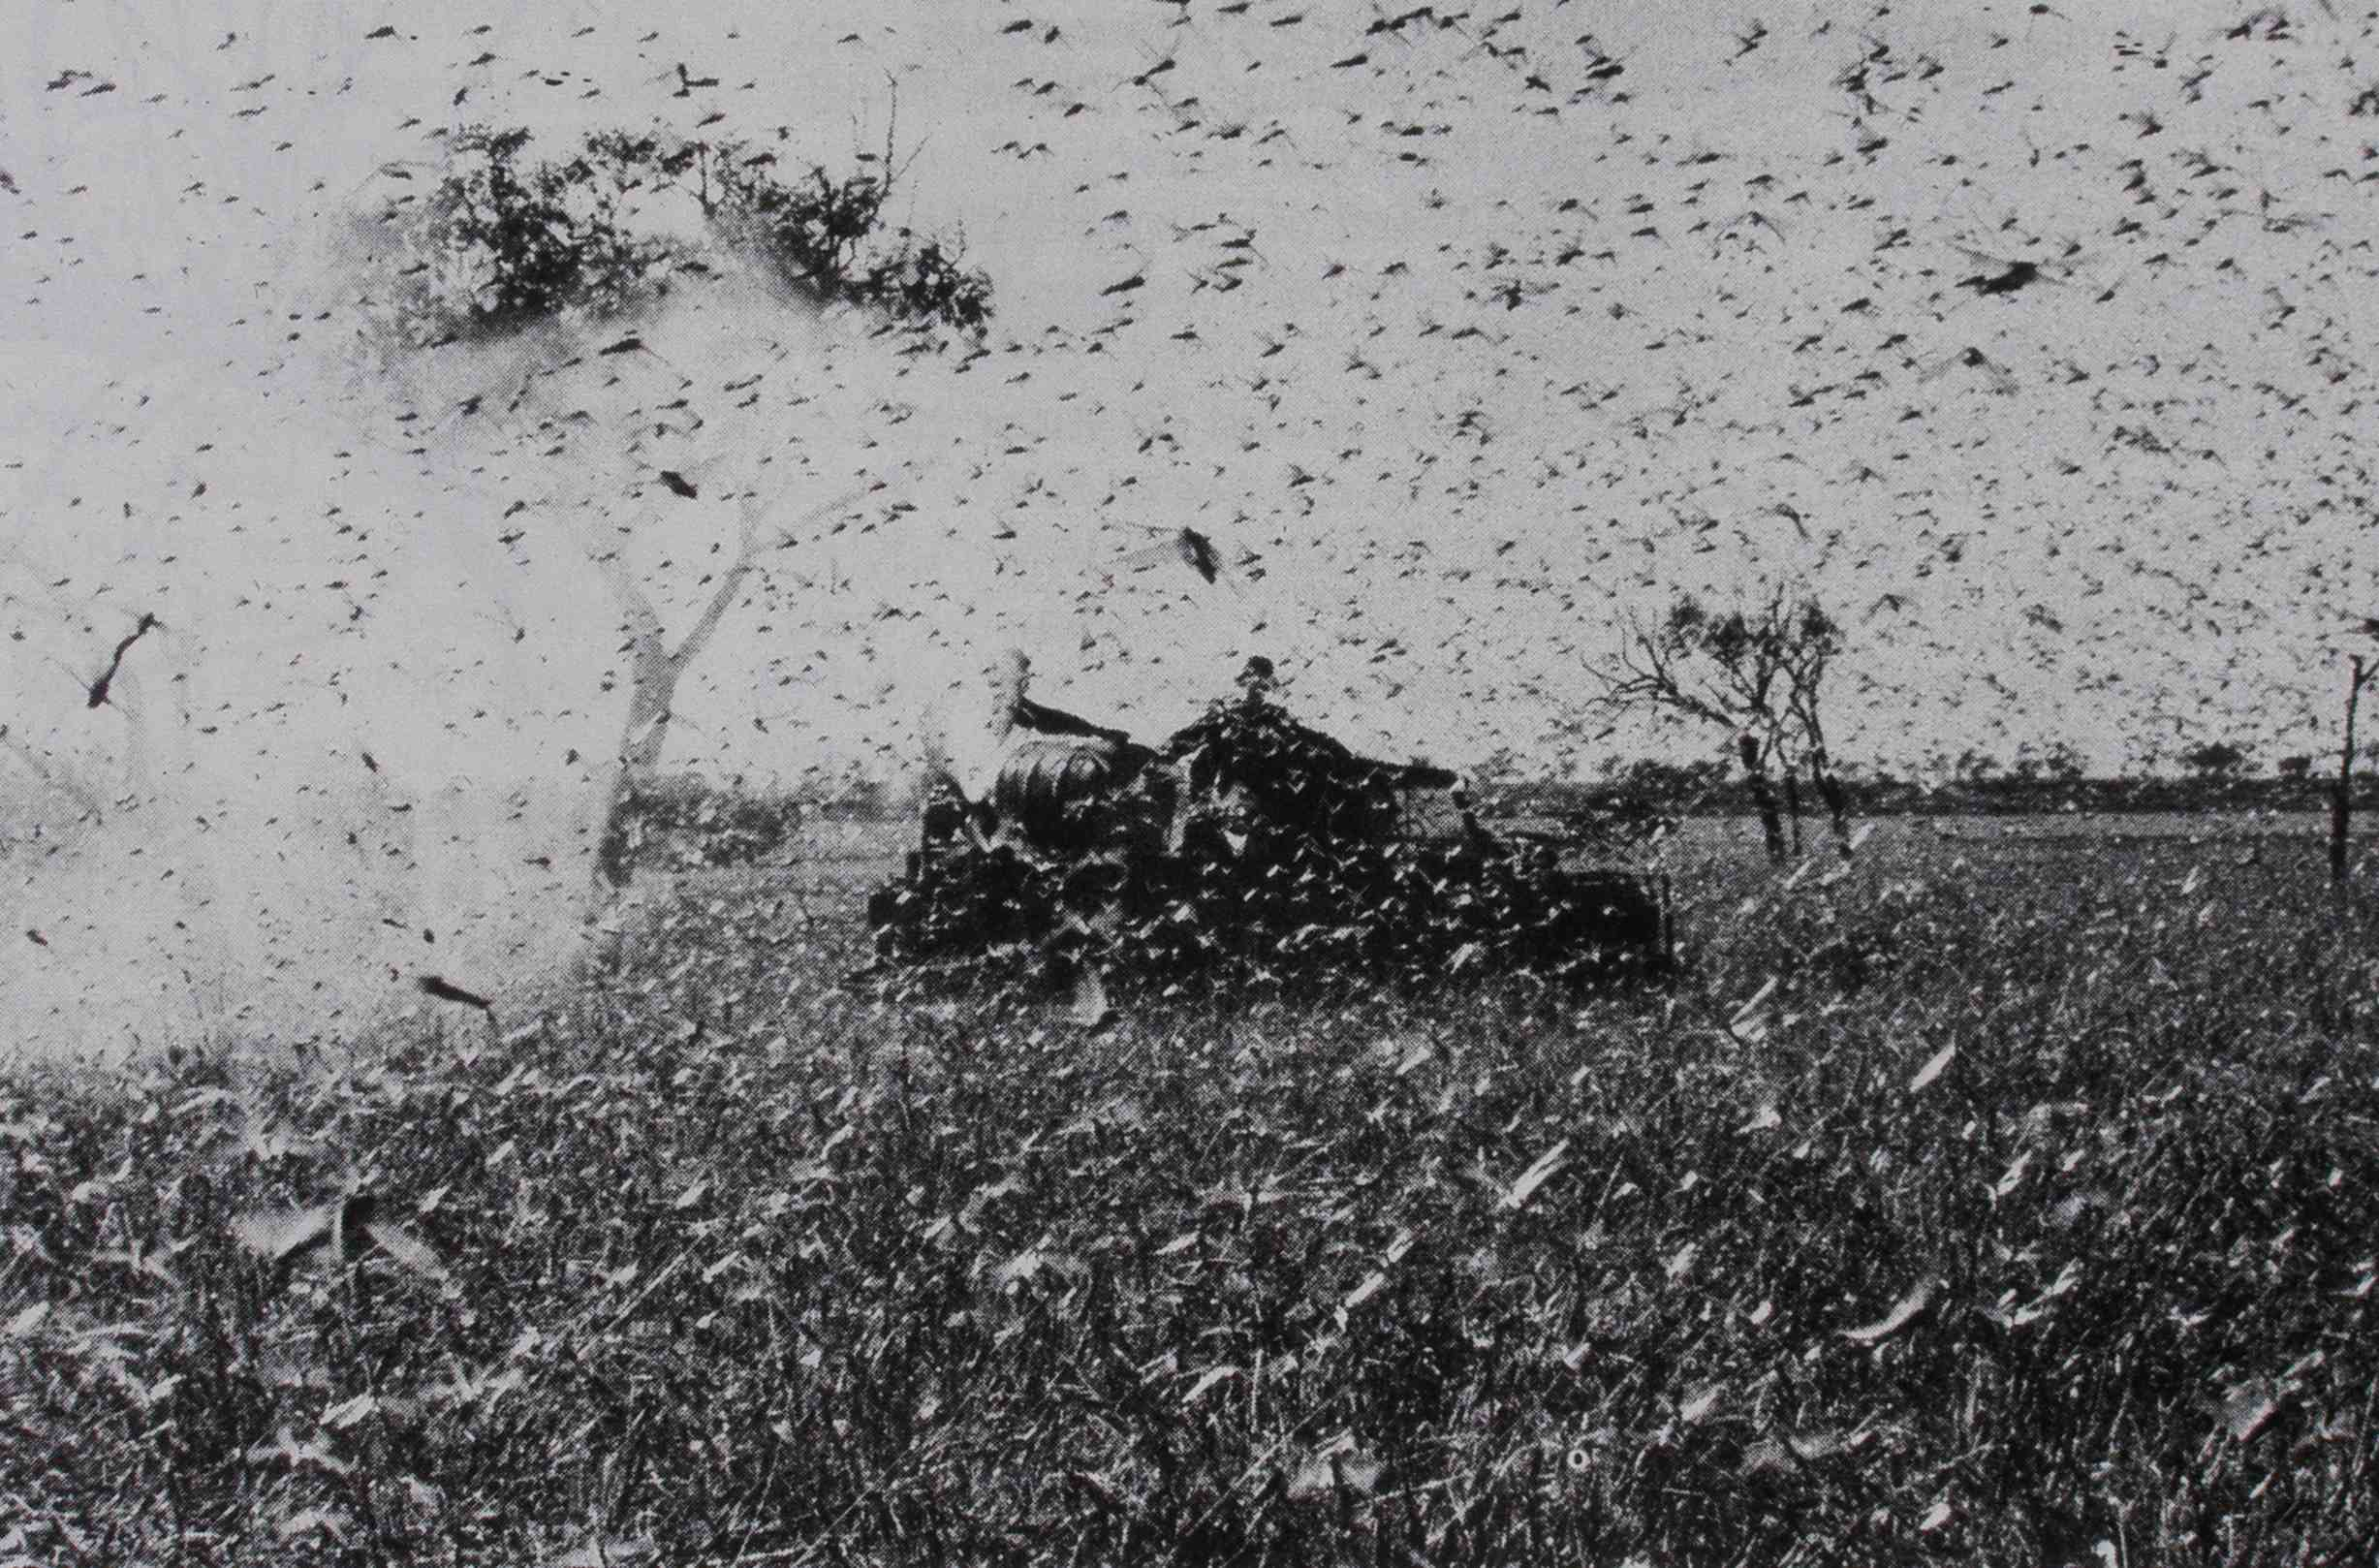 What happened to the locusts?